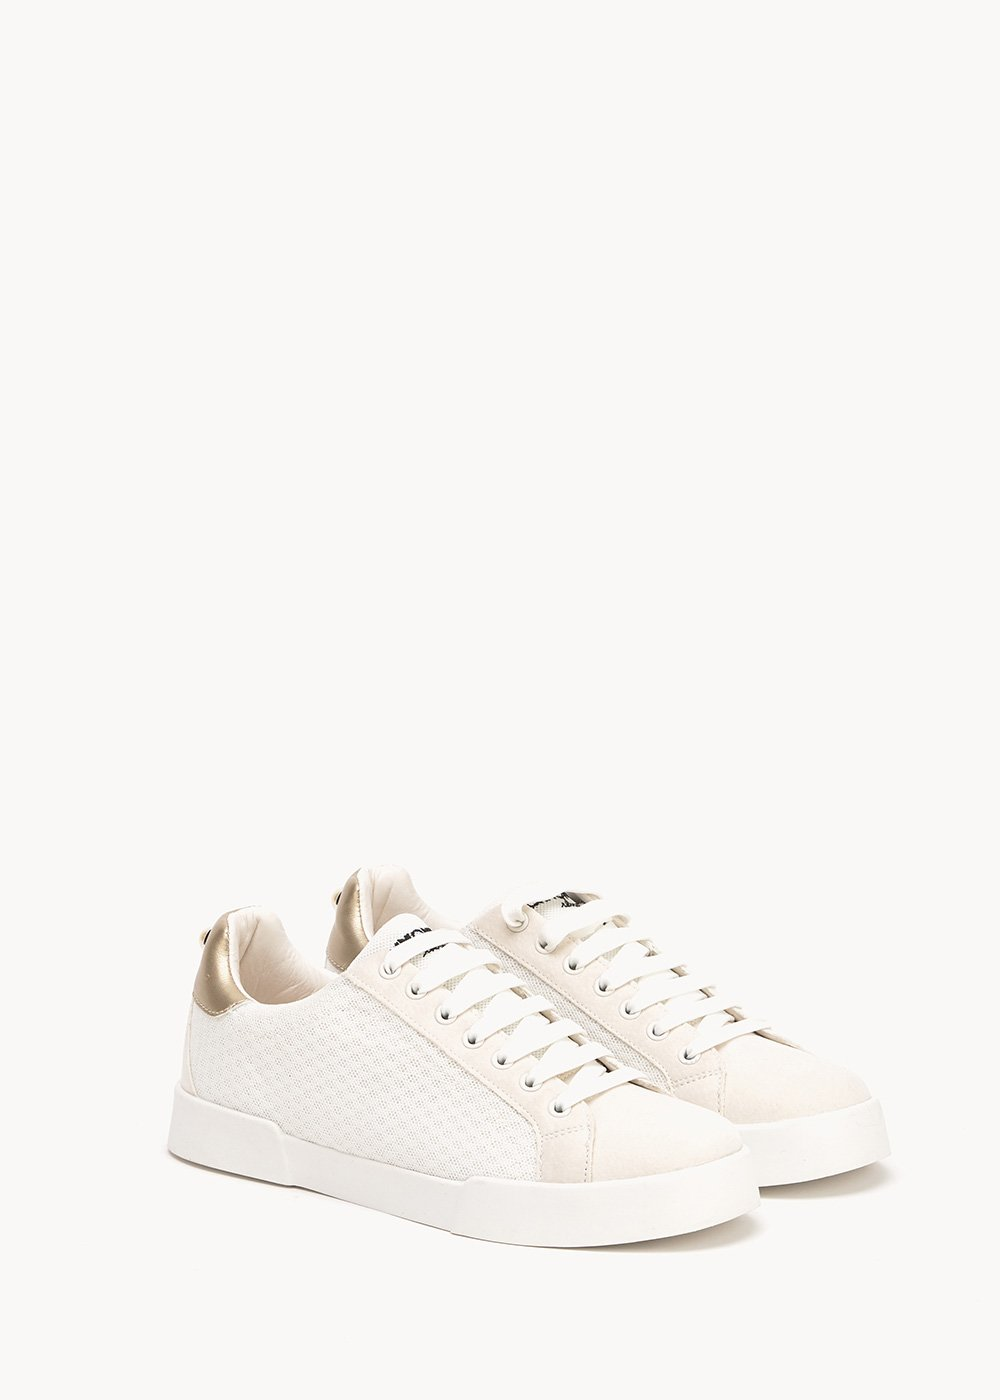 Sharon sneakers in technical fabric - coconut - Woman